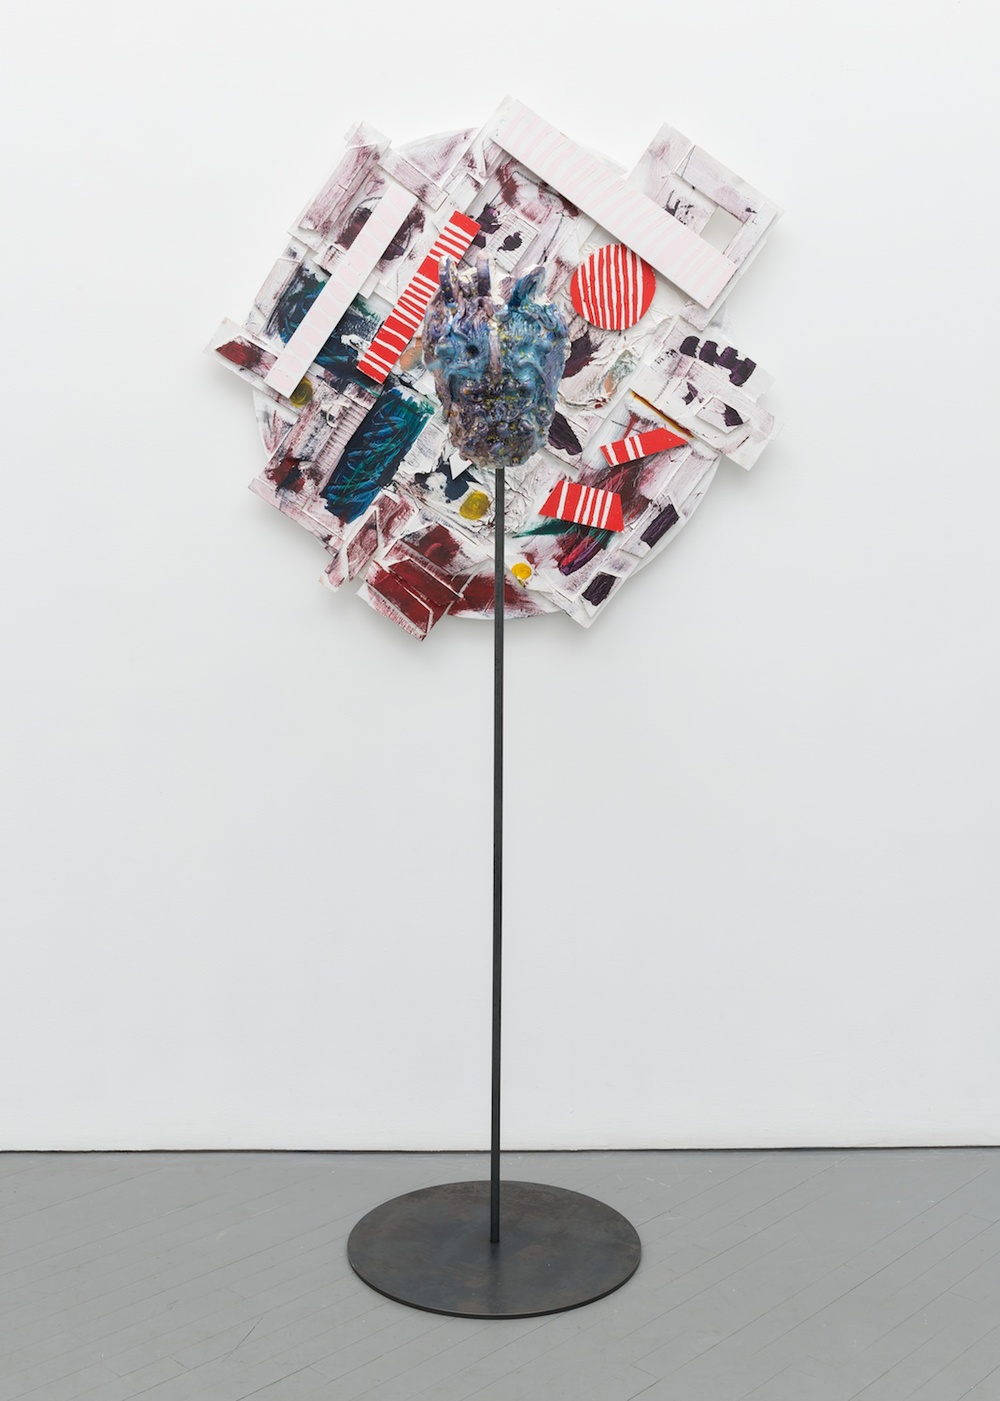 William J. O'Brien  Untitled  2013/2014 Mixed media on wood; Glazed ceramic on steel armature 35h x 42w in (painting); 65 ¾h x 20w x 20d in (ceramic + stand) WOB909/WOB938